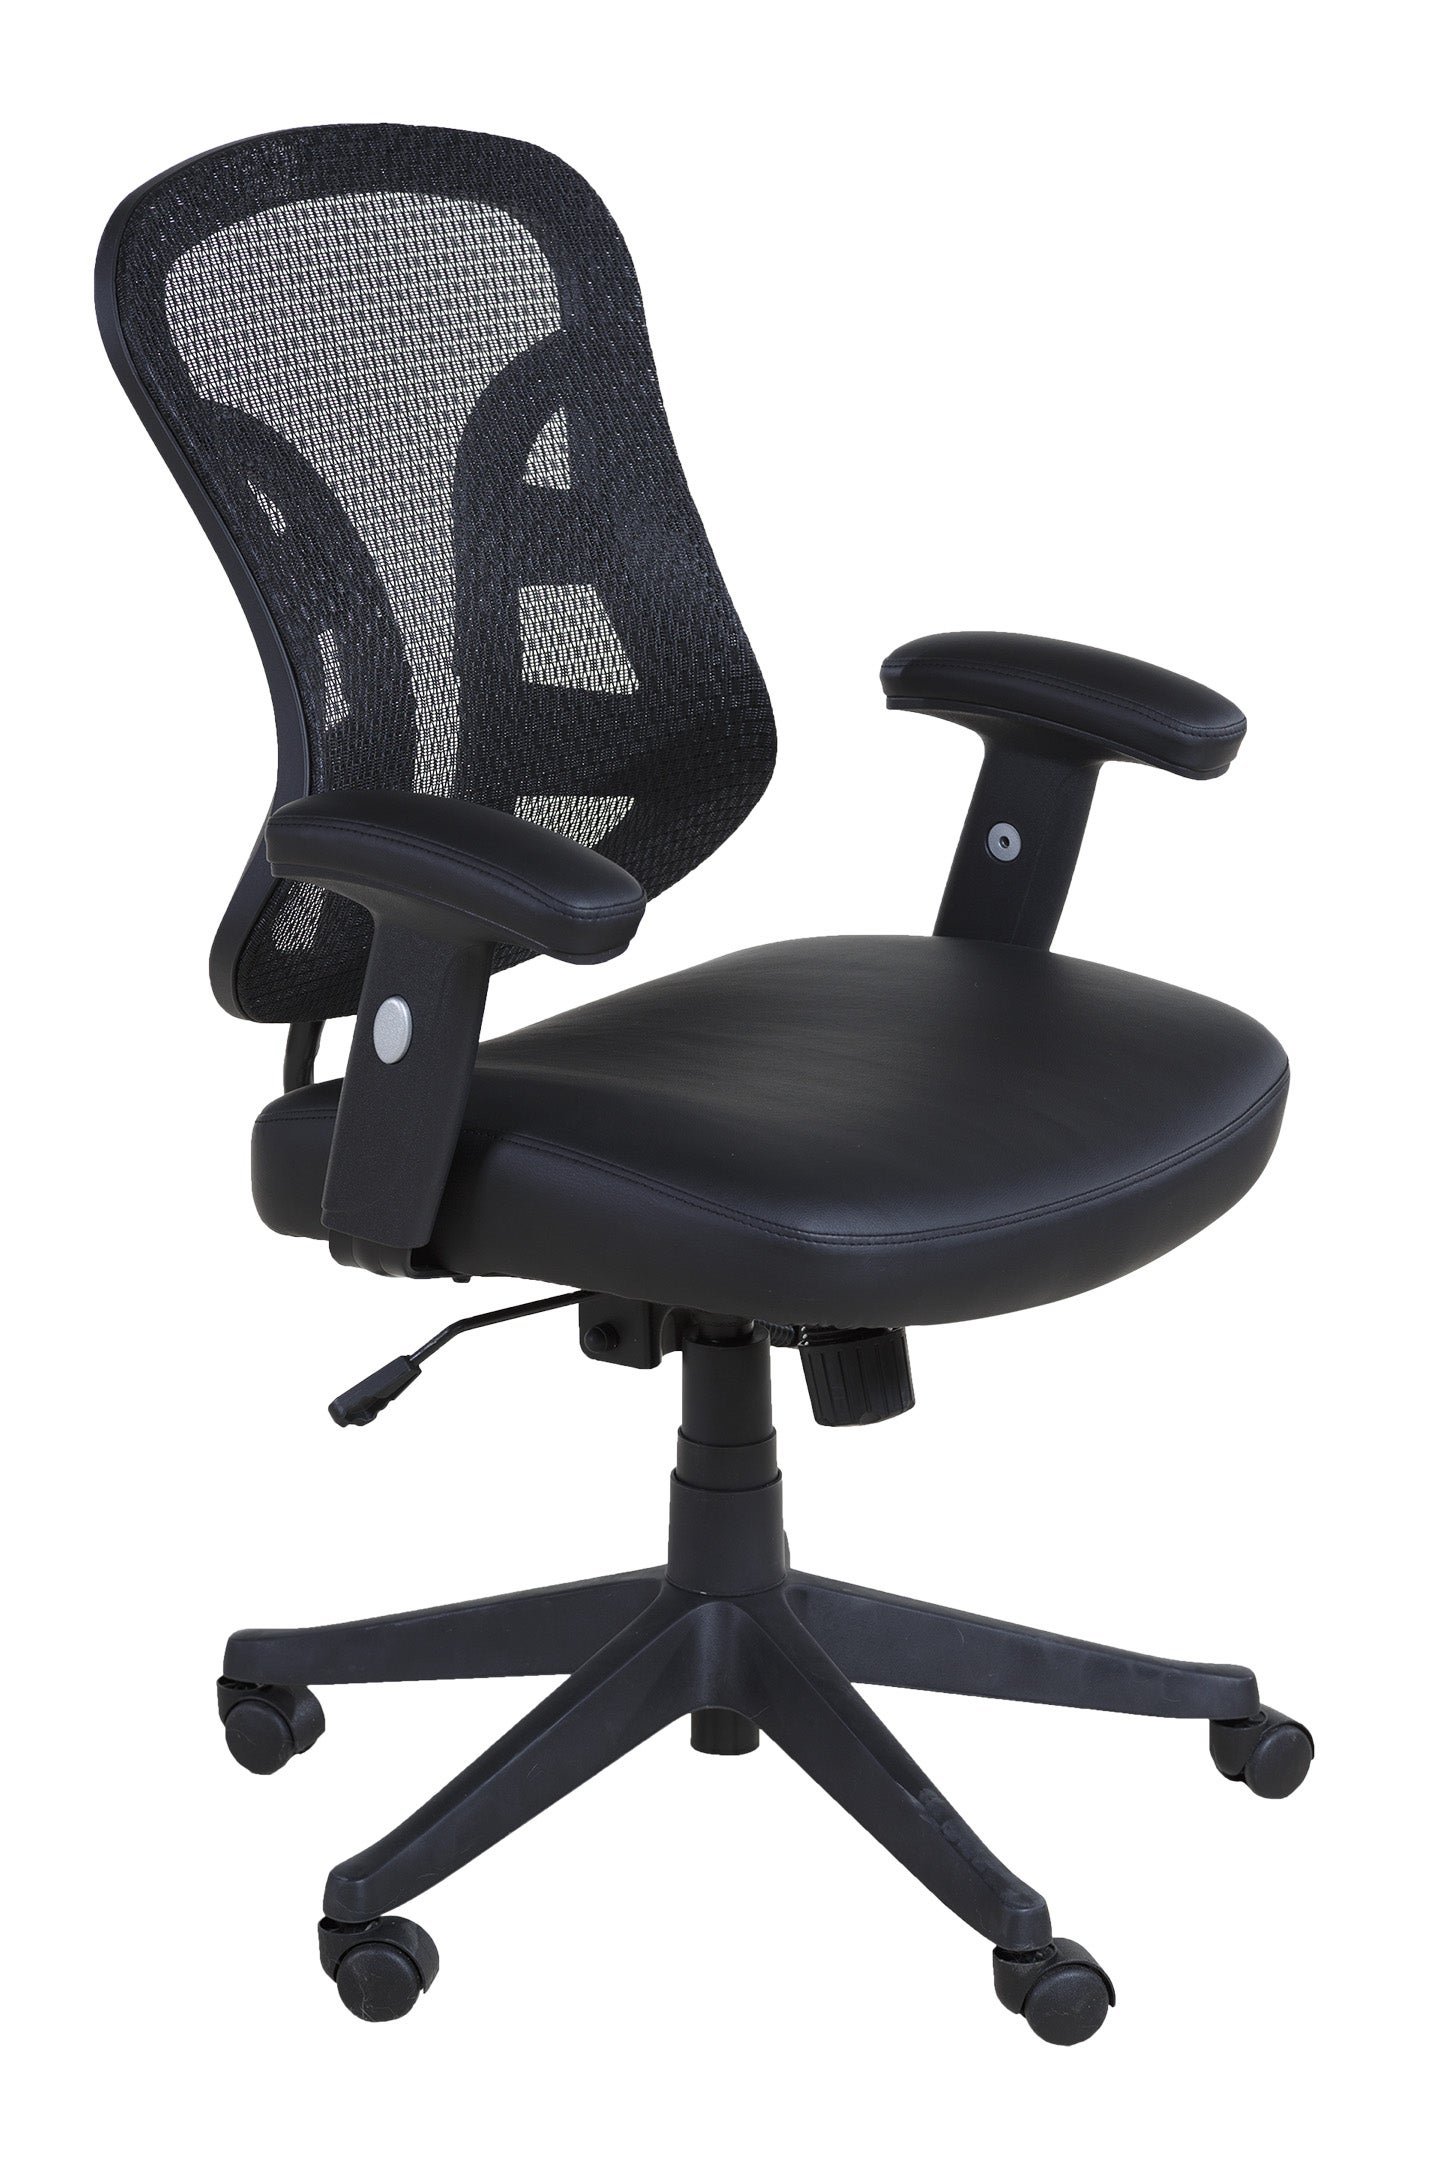 OneSpace 60-90273 Black PU Leather Mid-back Mesh Executive Chair with 2-to-1 Synchro Tilt